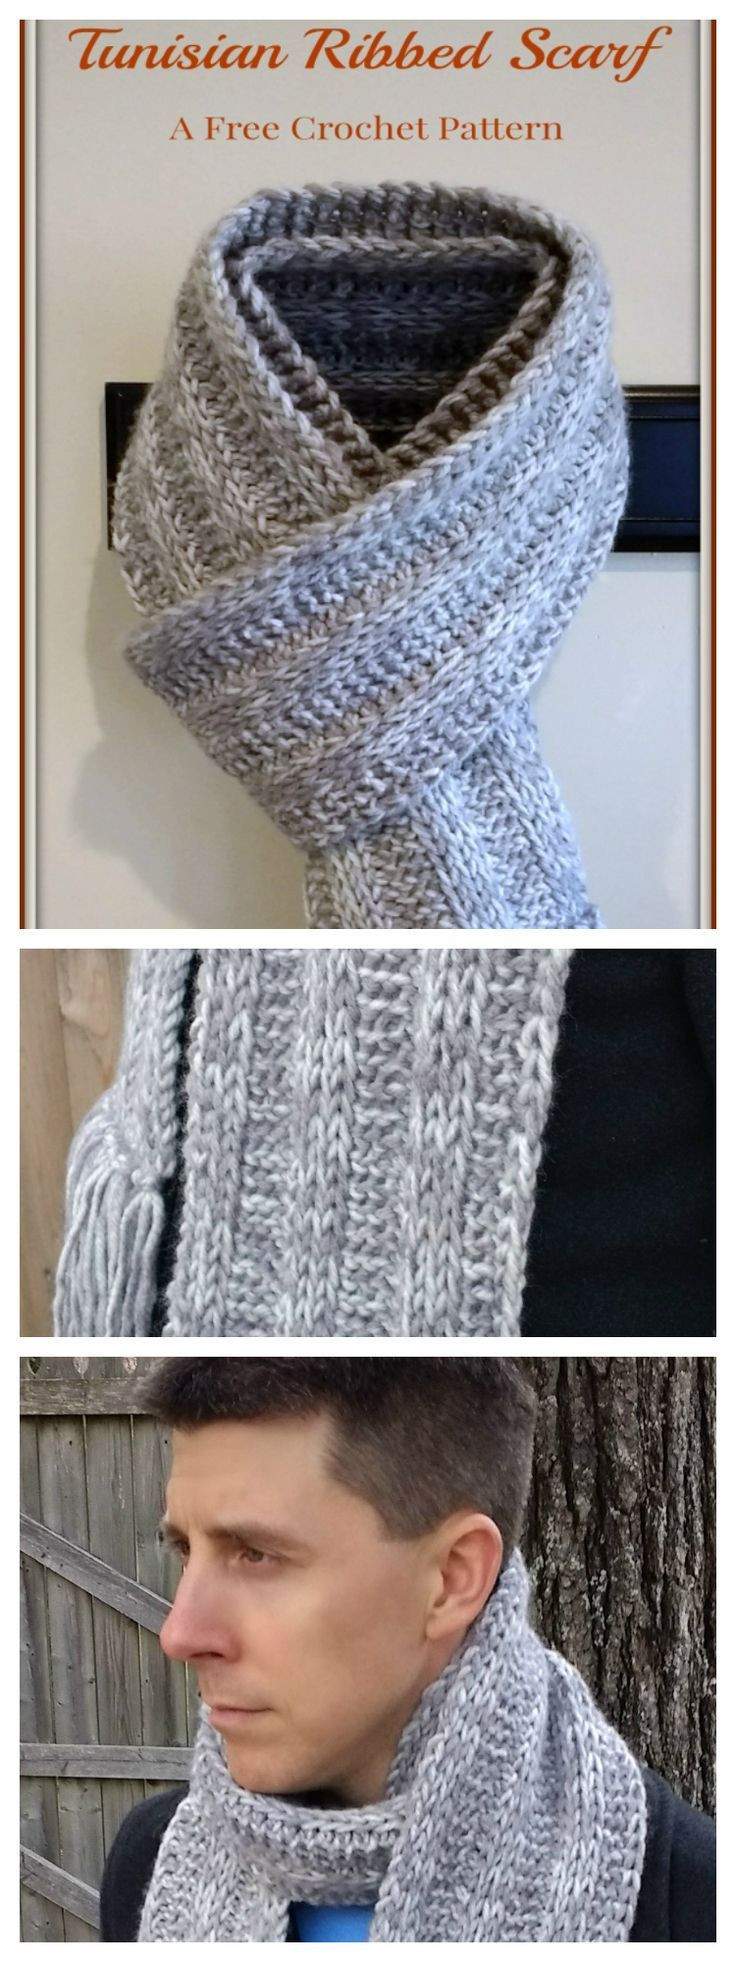 Unique 1502 Best Crochet Hats Scarves & Shawls Images On Pinterest Crochet Hat and Scarf Patterns Free Of Amazing 47 Pics Crochet Hat and Scarf Patterns Free